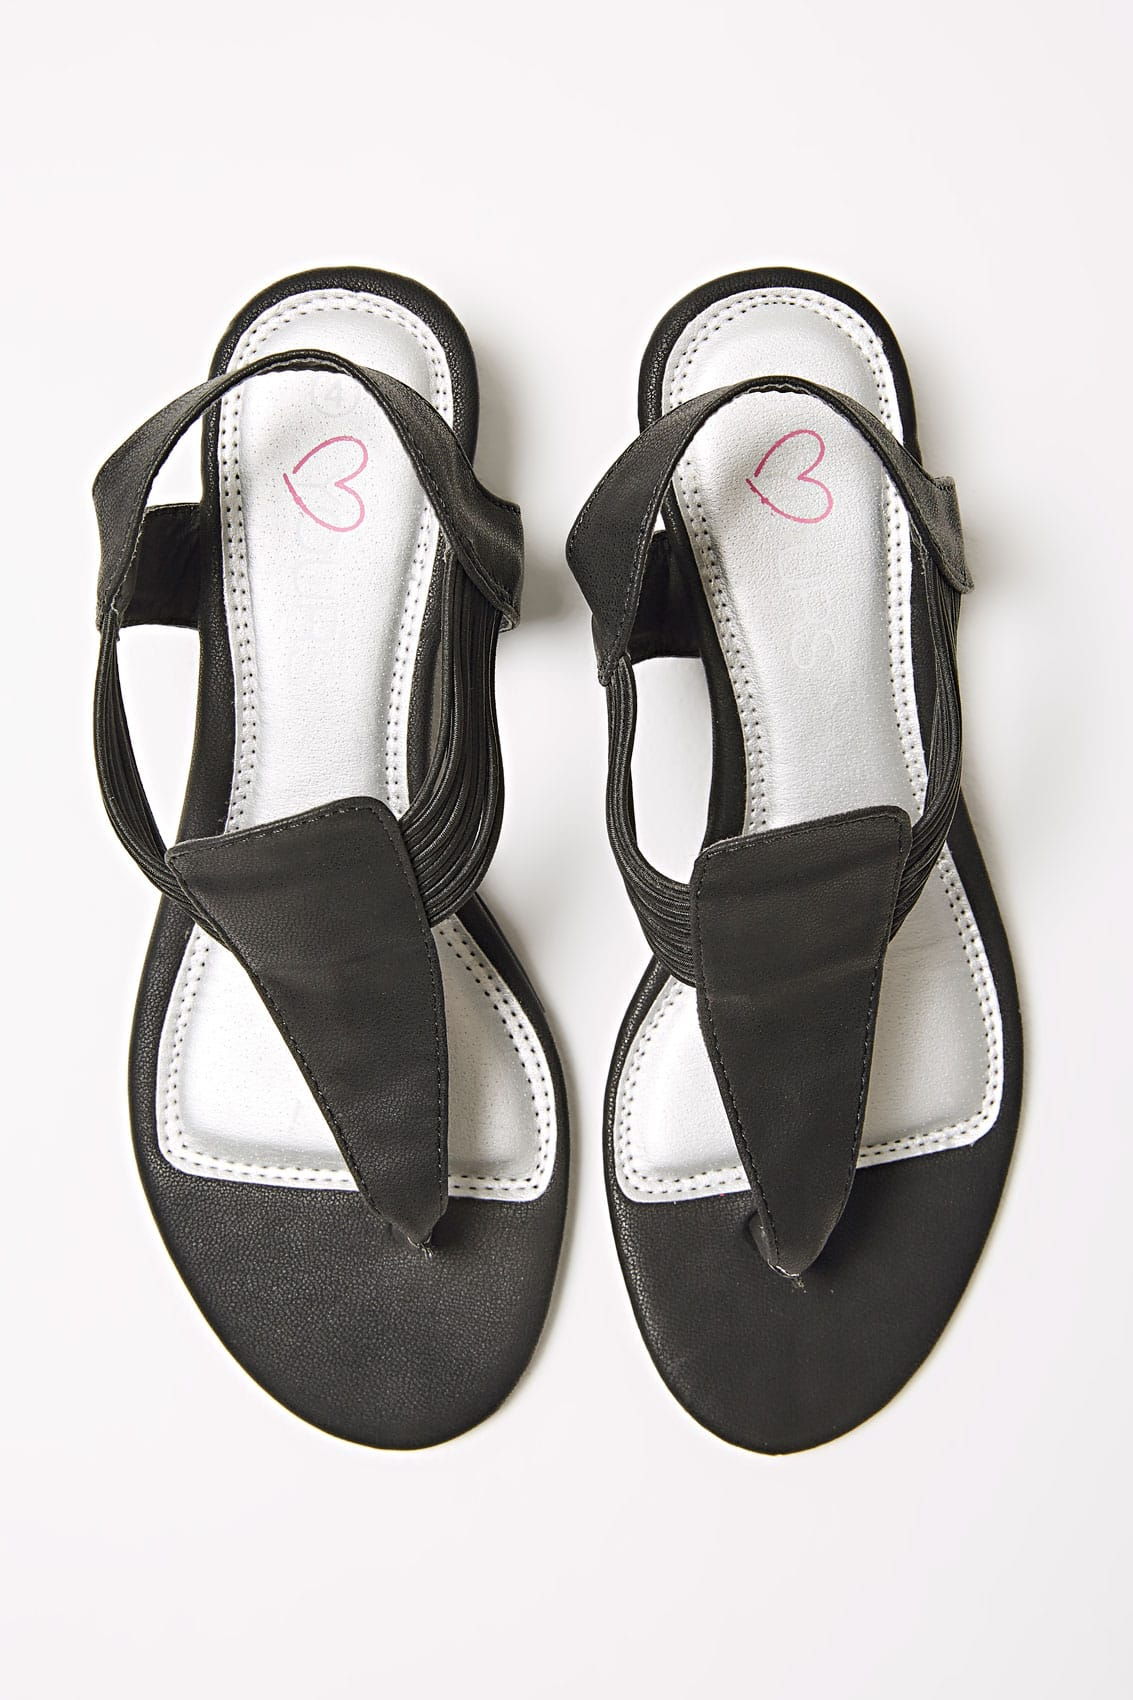 Black Toe-Post Wedge Sandal In Eee Fit-9609